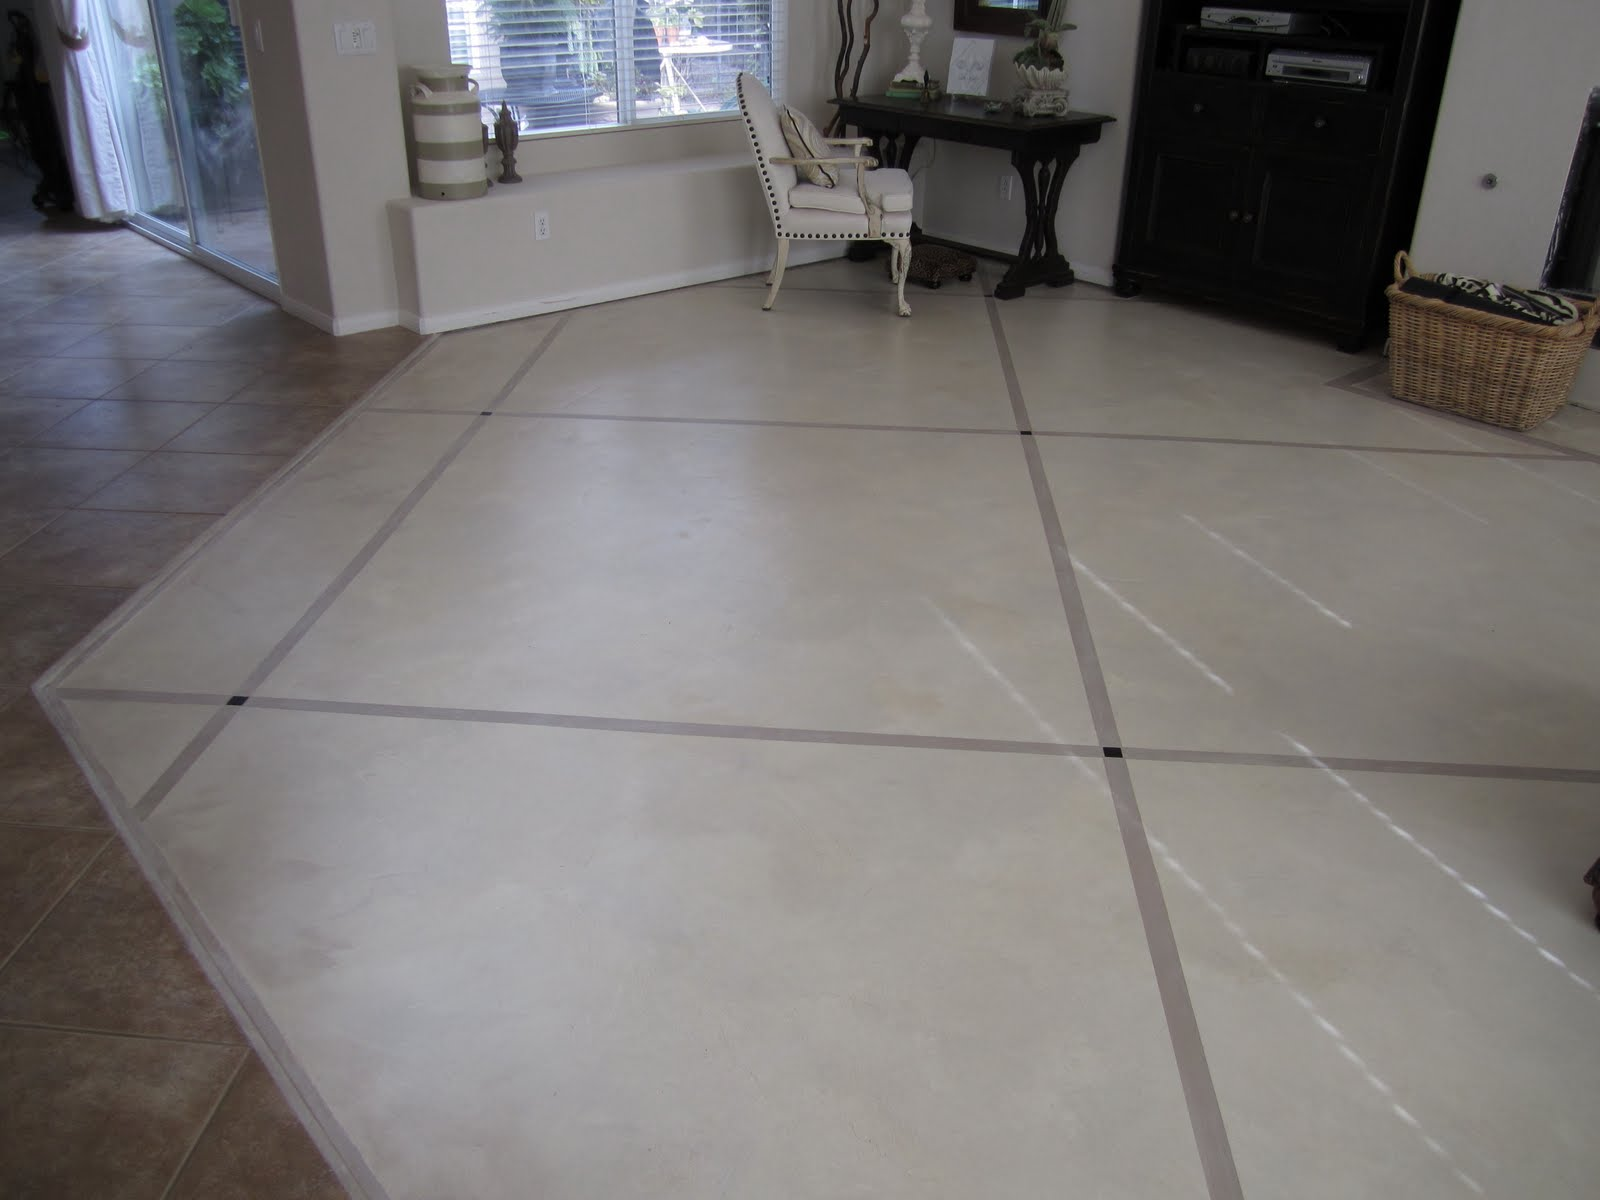 Anythingology Step By Instructions On How To Prep And Paint Concrete Floors